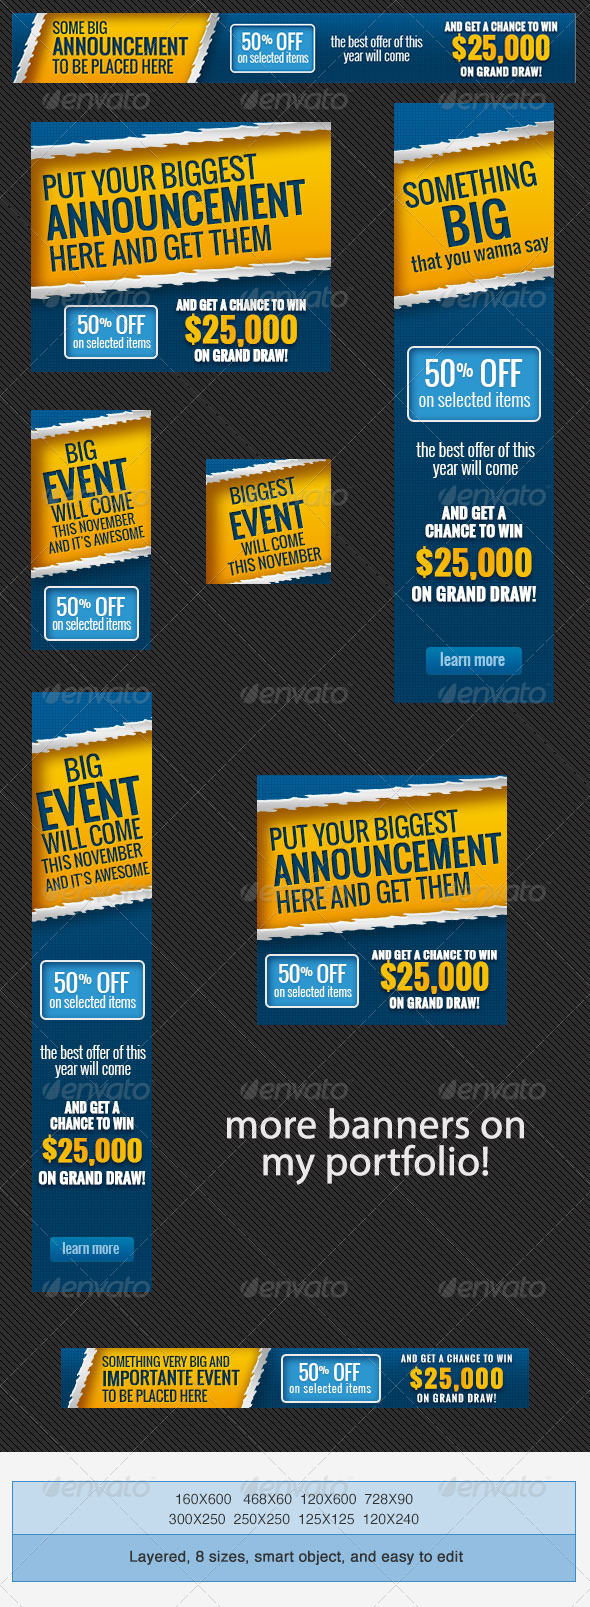 Big Event Banner Ads PSD Template - Banners & Ads Web Elements